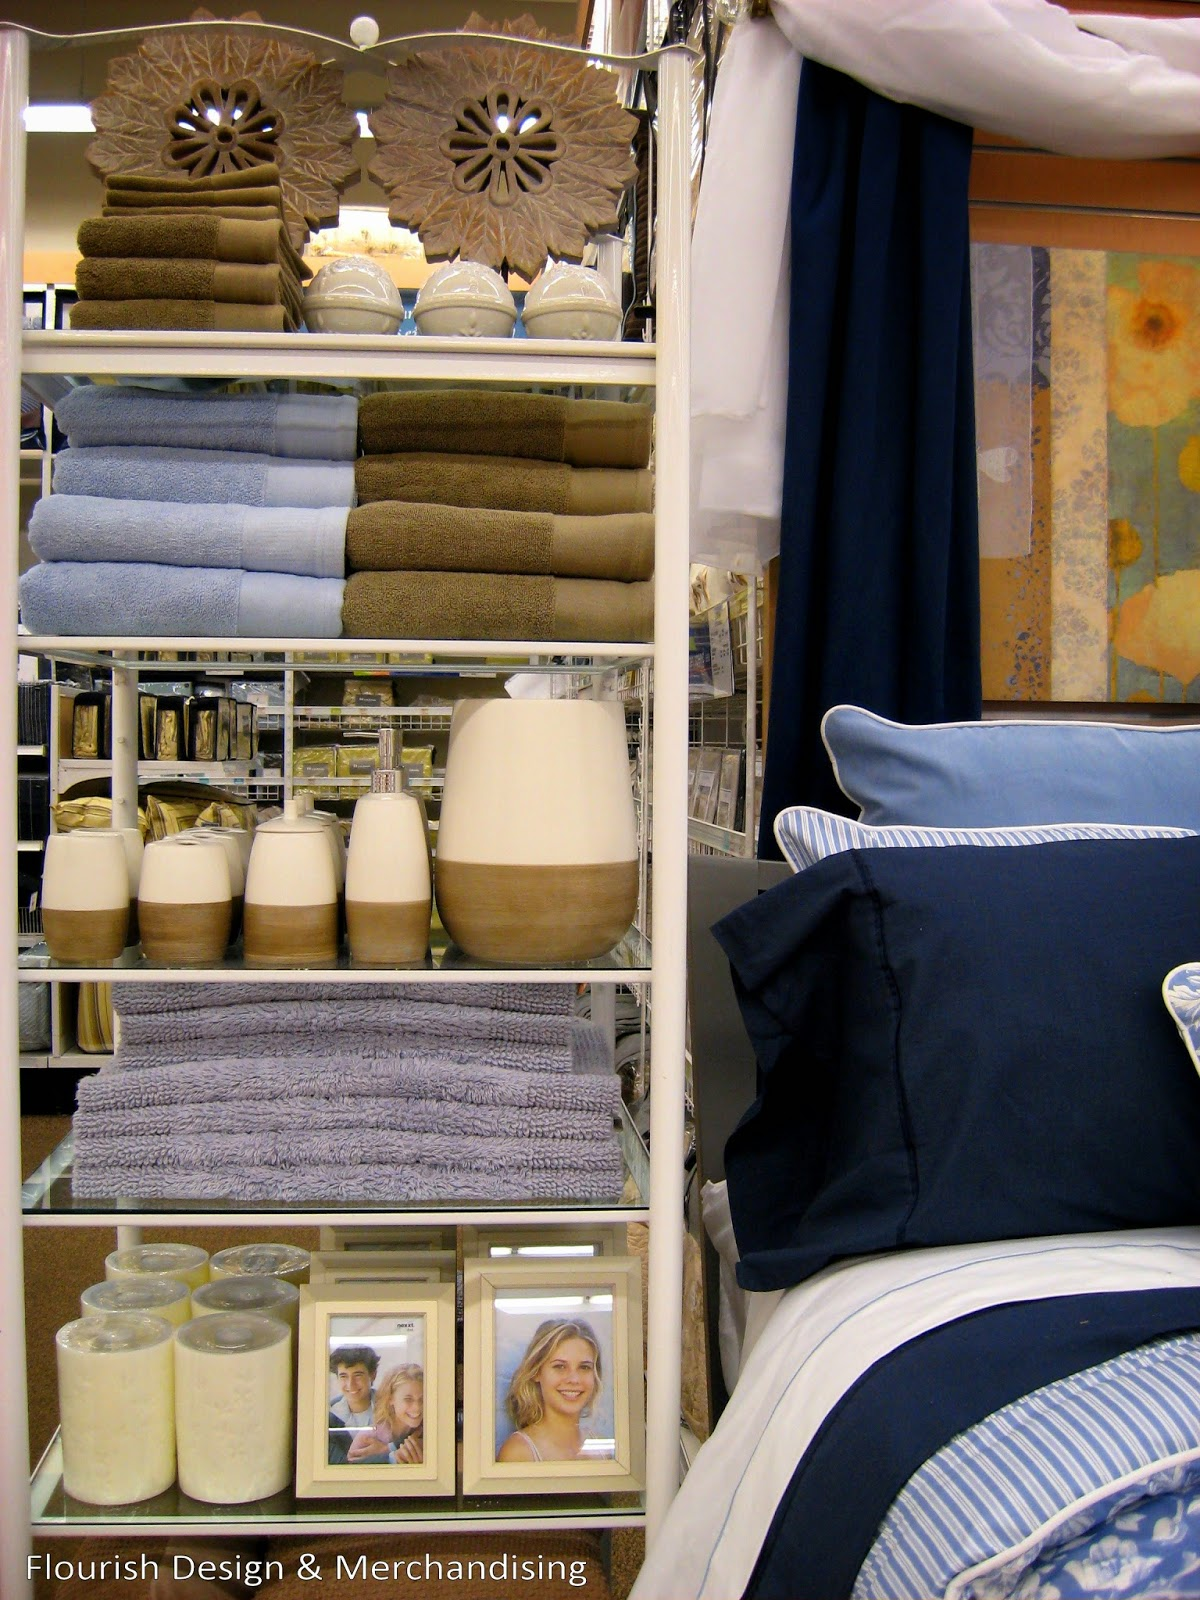 Bath accessory display on etagere to coordinate with bedding - visual merchandising